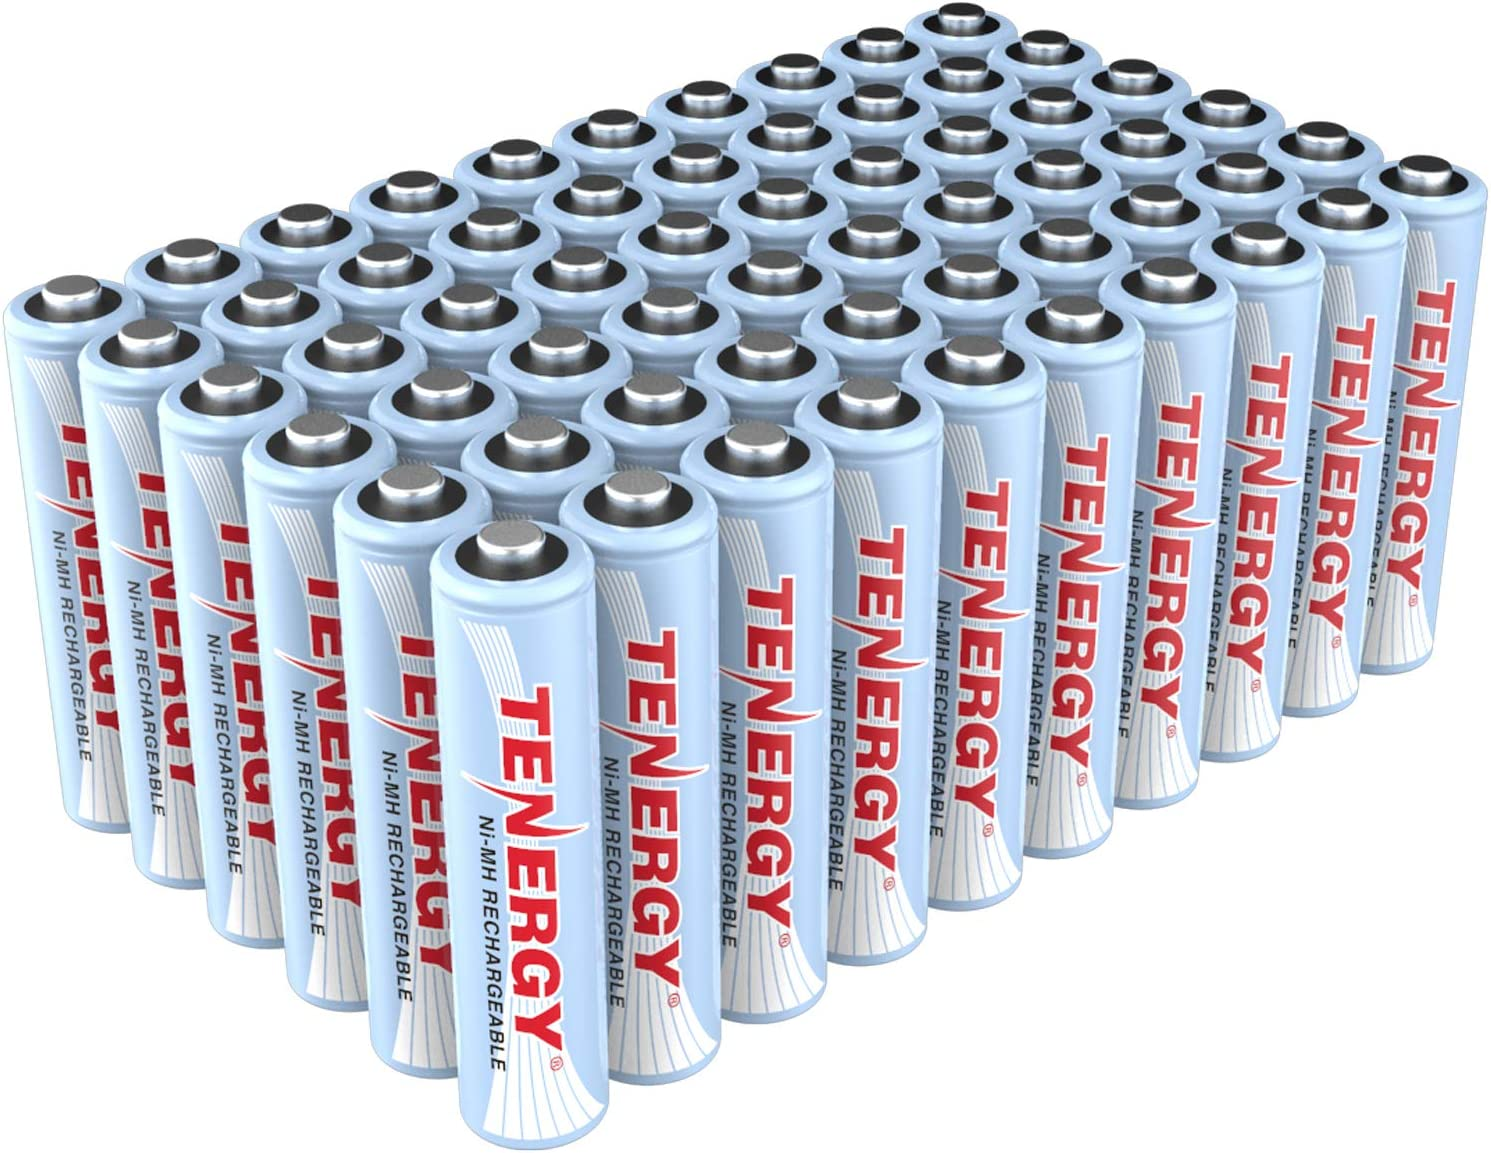 Types Of Batteries Sizes How Long They Last Disposal